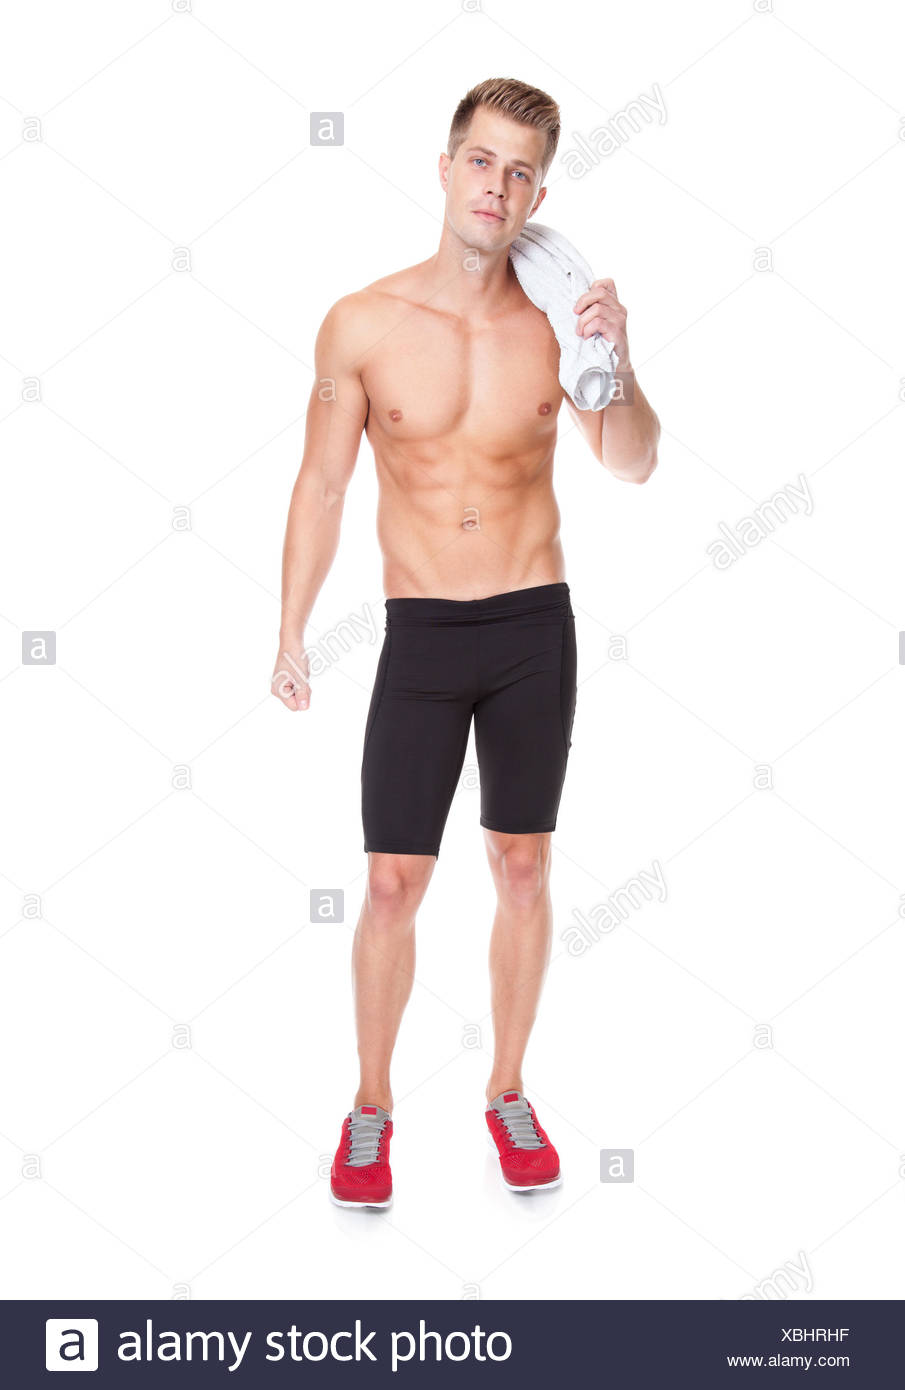 Six Pack Abs Man Cut Out Stock Images & Pictures - Alamy